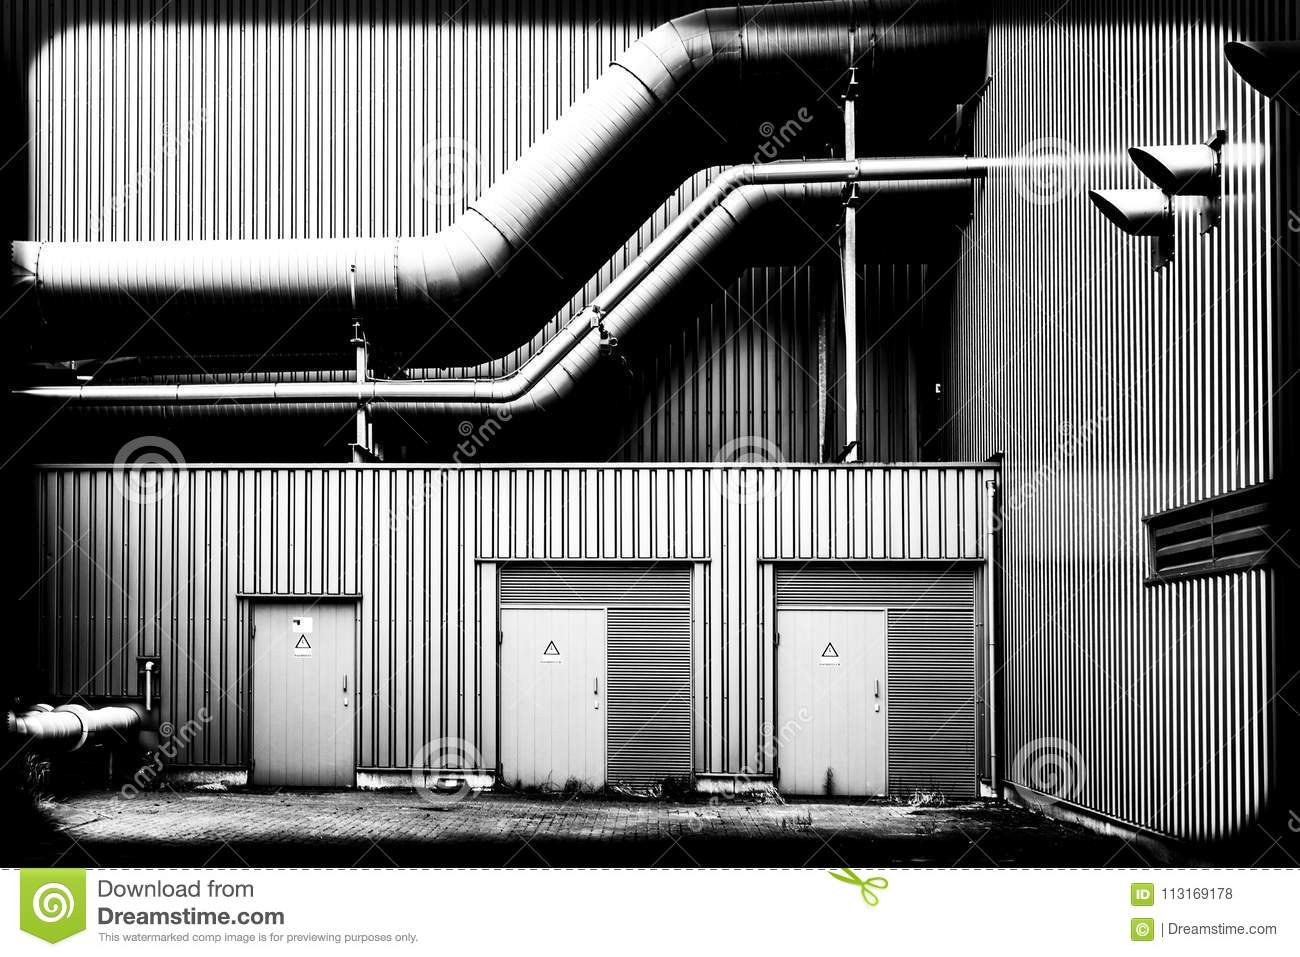 Pipes of a factory